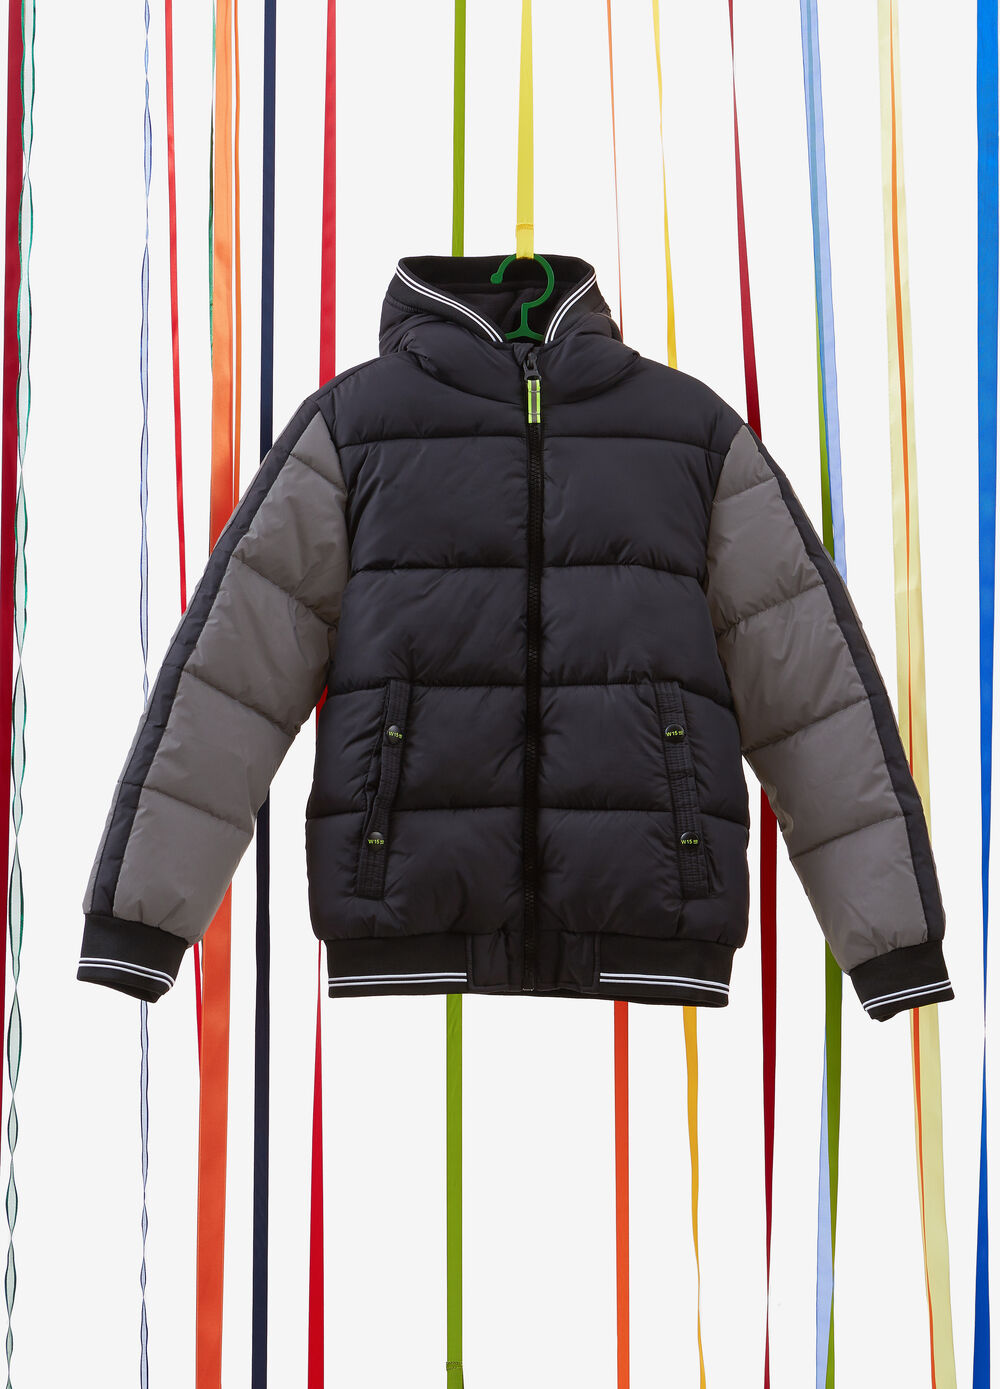 Quilted jacket with contrasting colour sleeves